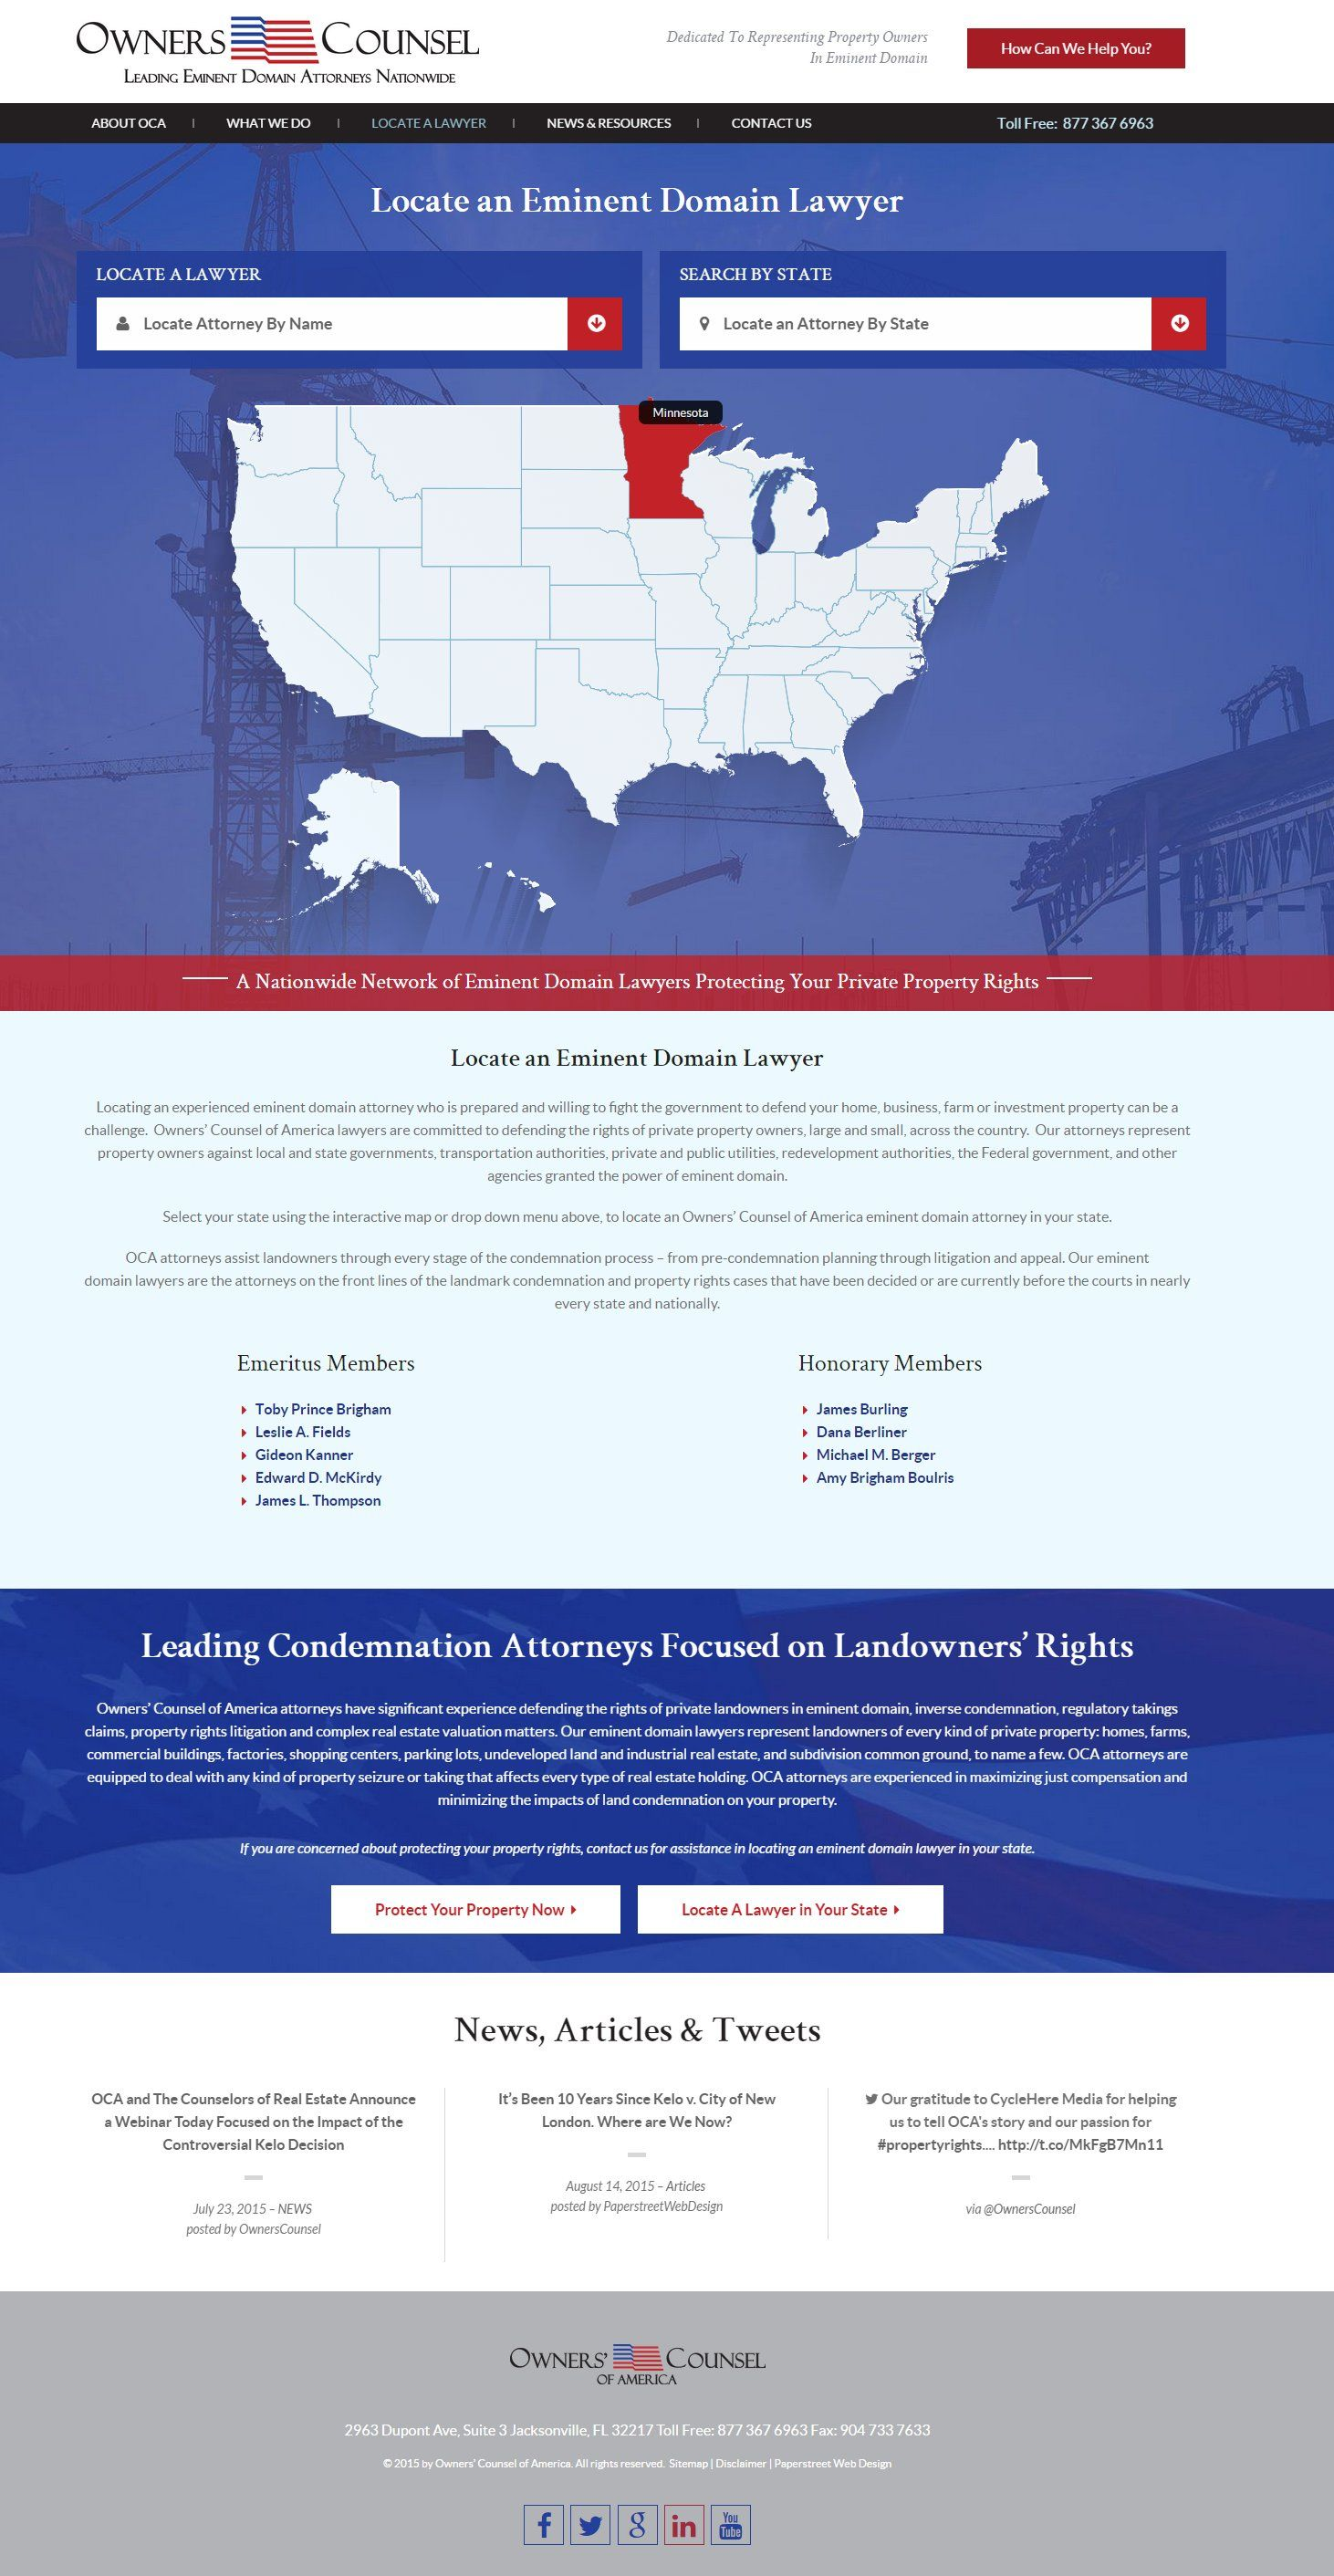 Attorney landing page, list of lawyers, map design, lawyer map design | PaperStreet